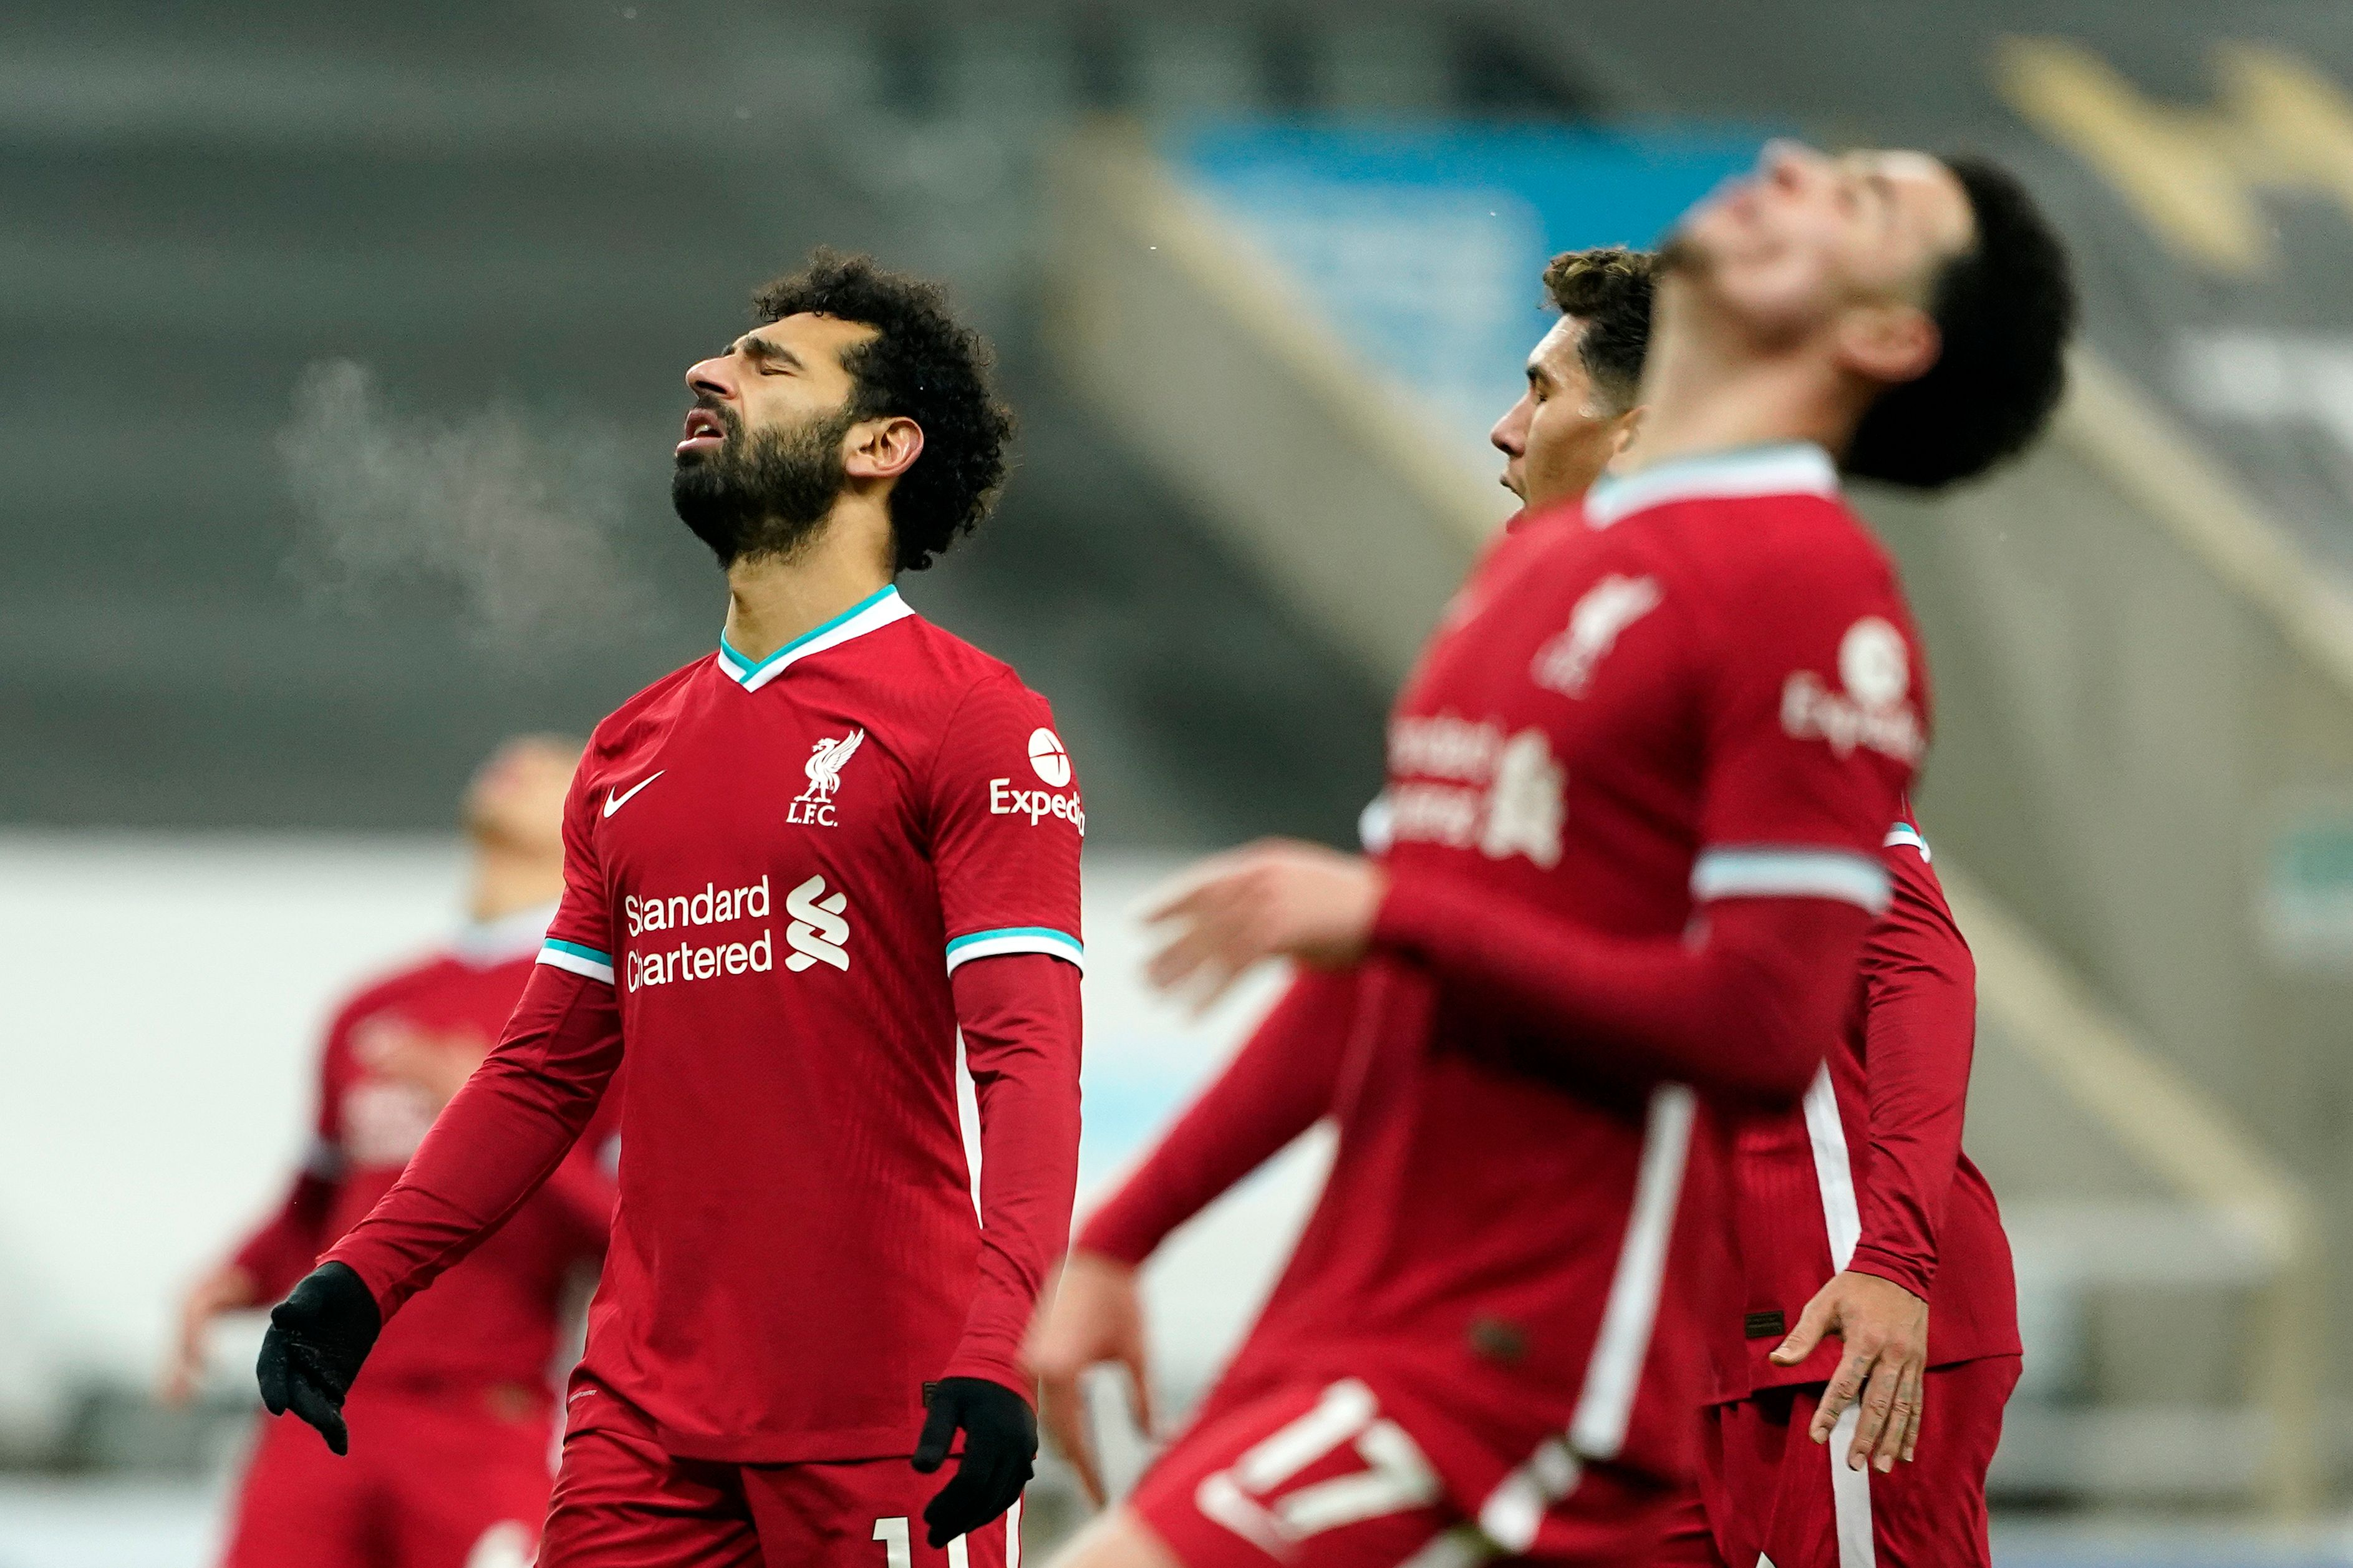 4-3-3 Liverpool Predicted Lineup Vs Tottenham Hotspur (Liverpool players look dejected in the picture)